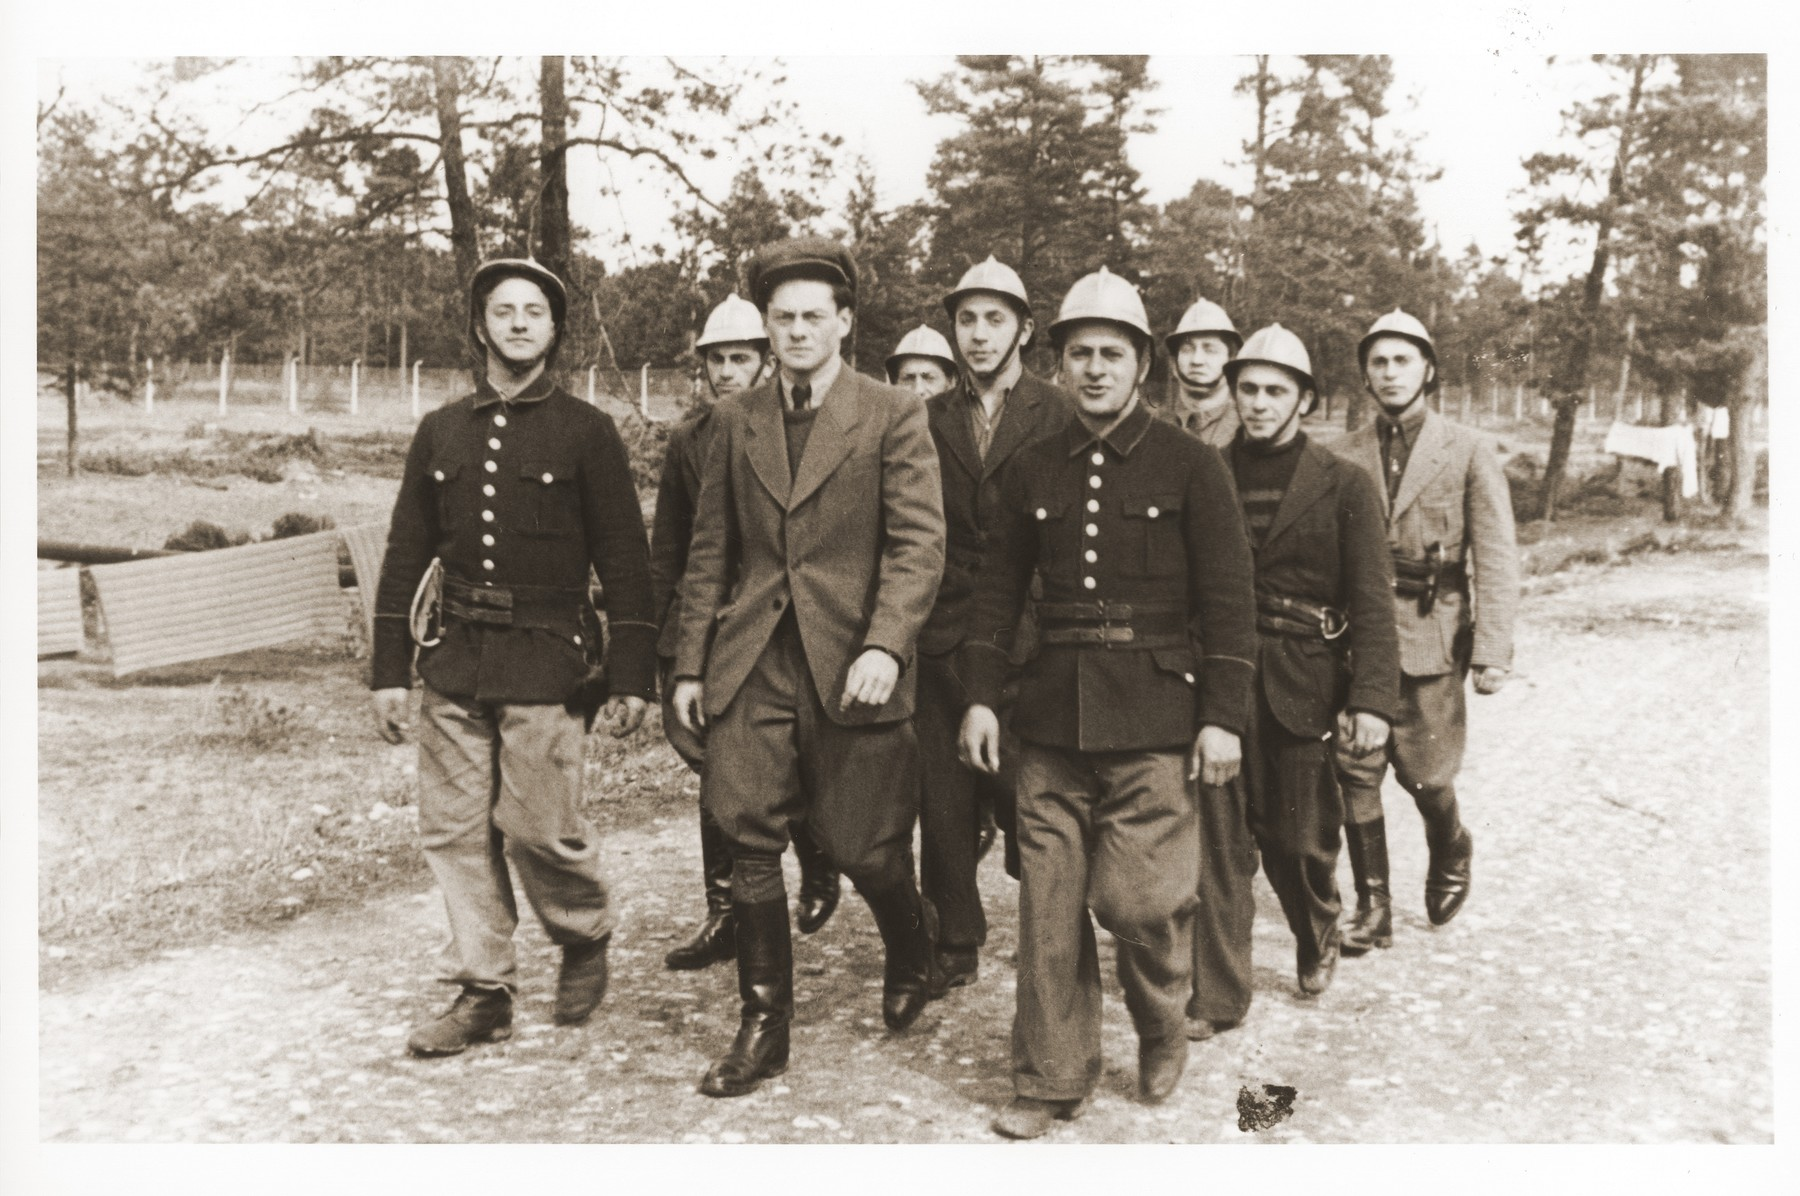 Members of the Foehrenwald displaced persons camp fire department march along a road in the camp.  Oskar Littman, the fire chief, is pictured in the center wearing a soft cap.